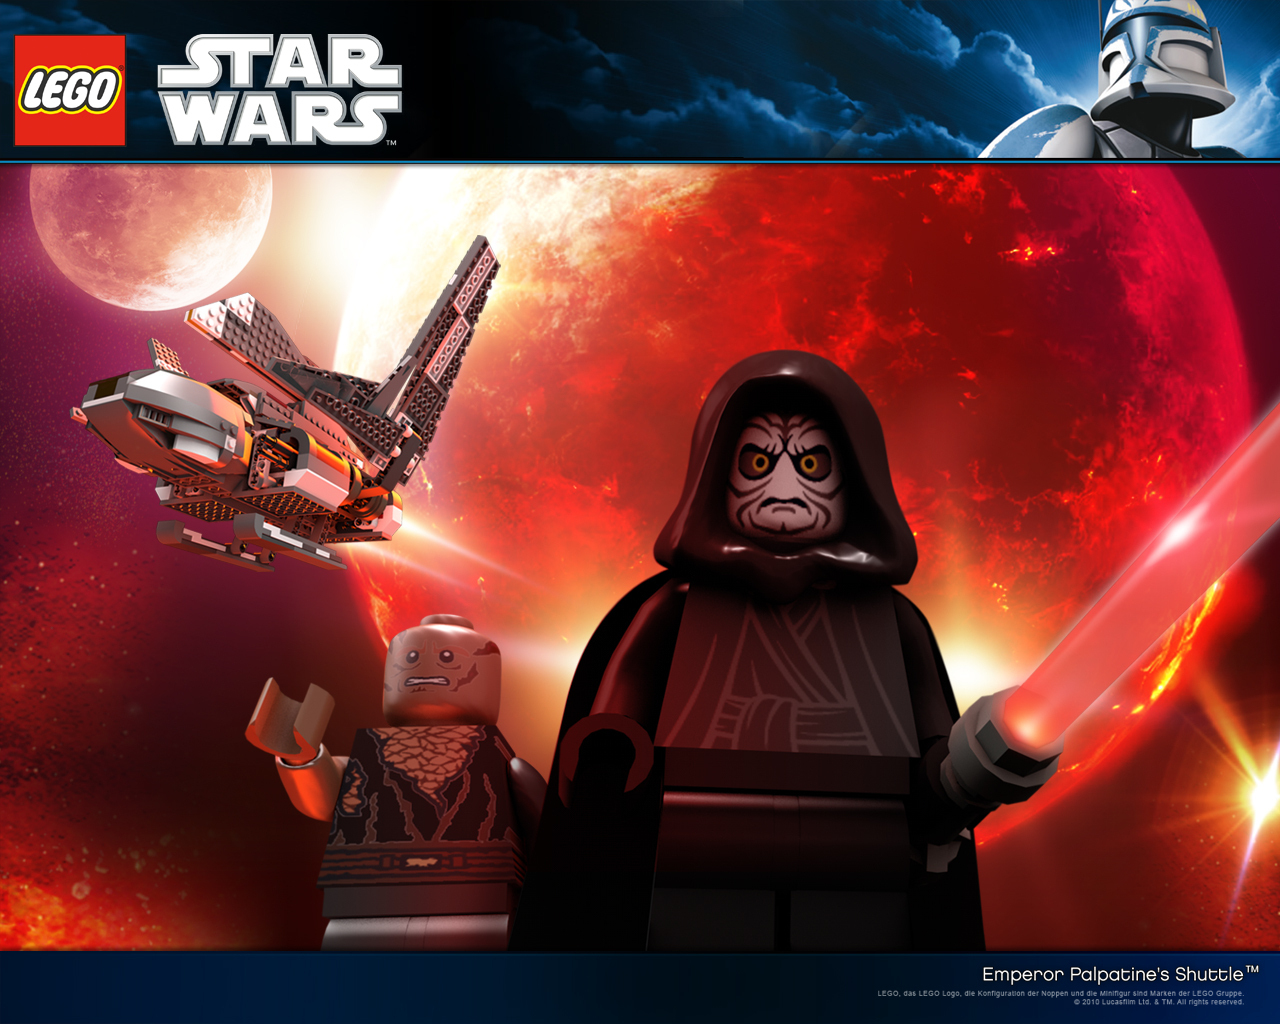 lego star wars images lego star wars hd wallpaper and background photos 23157038. Black Bedroom Furniture Sets. Home Design Ideas